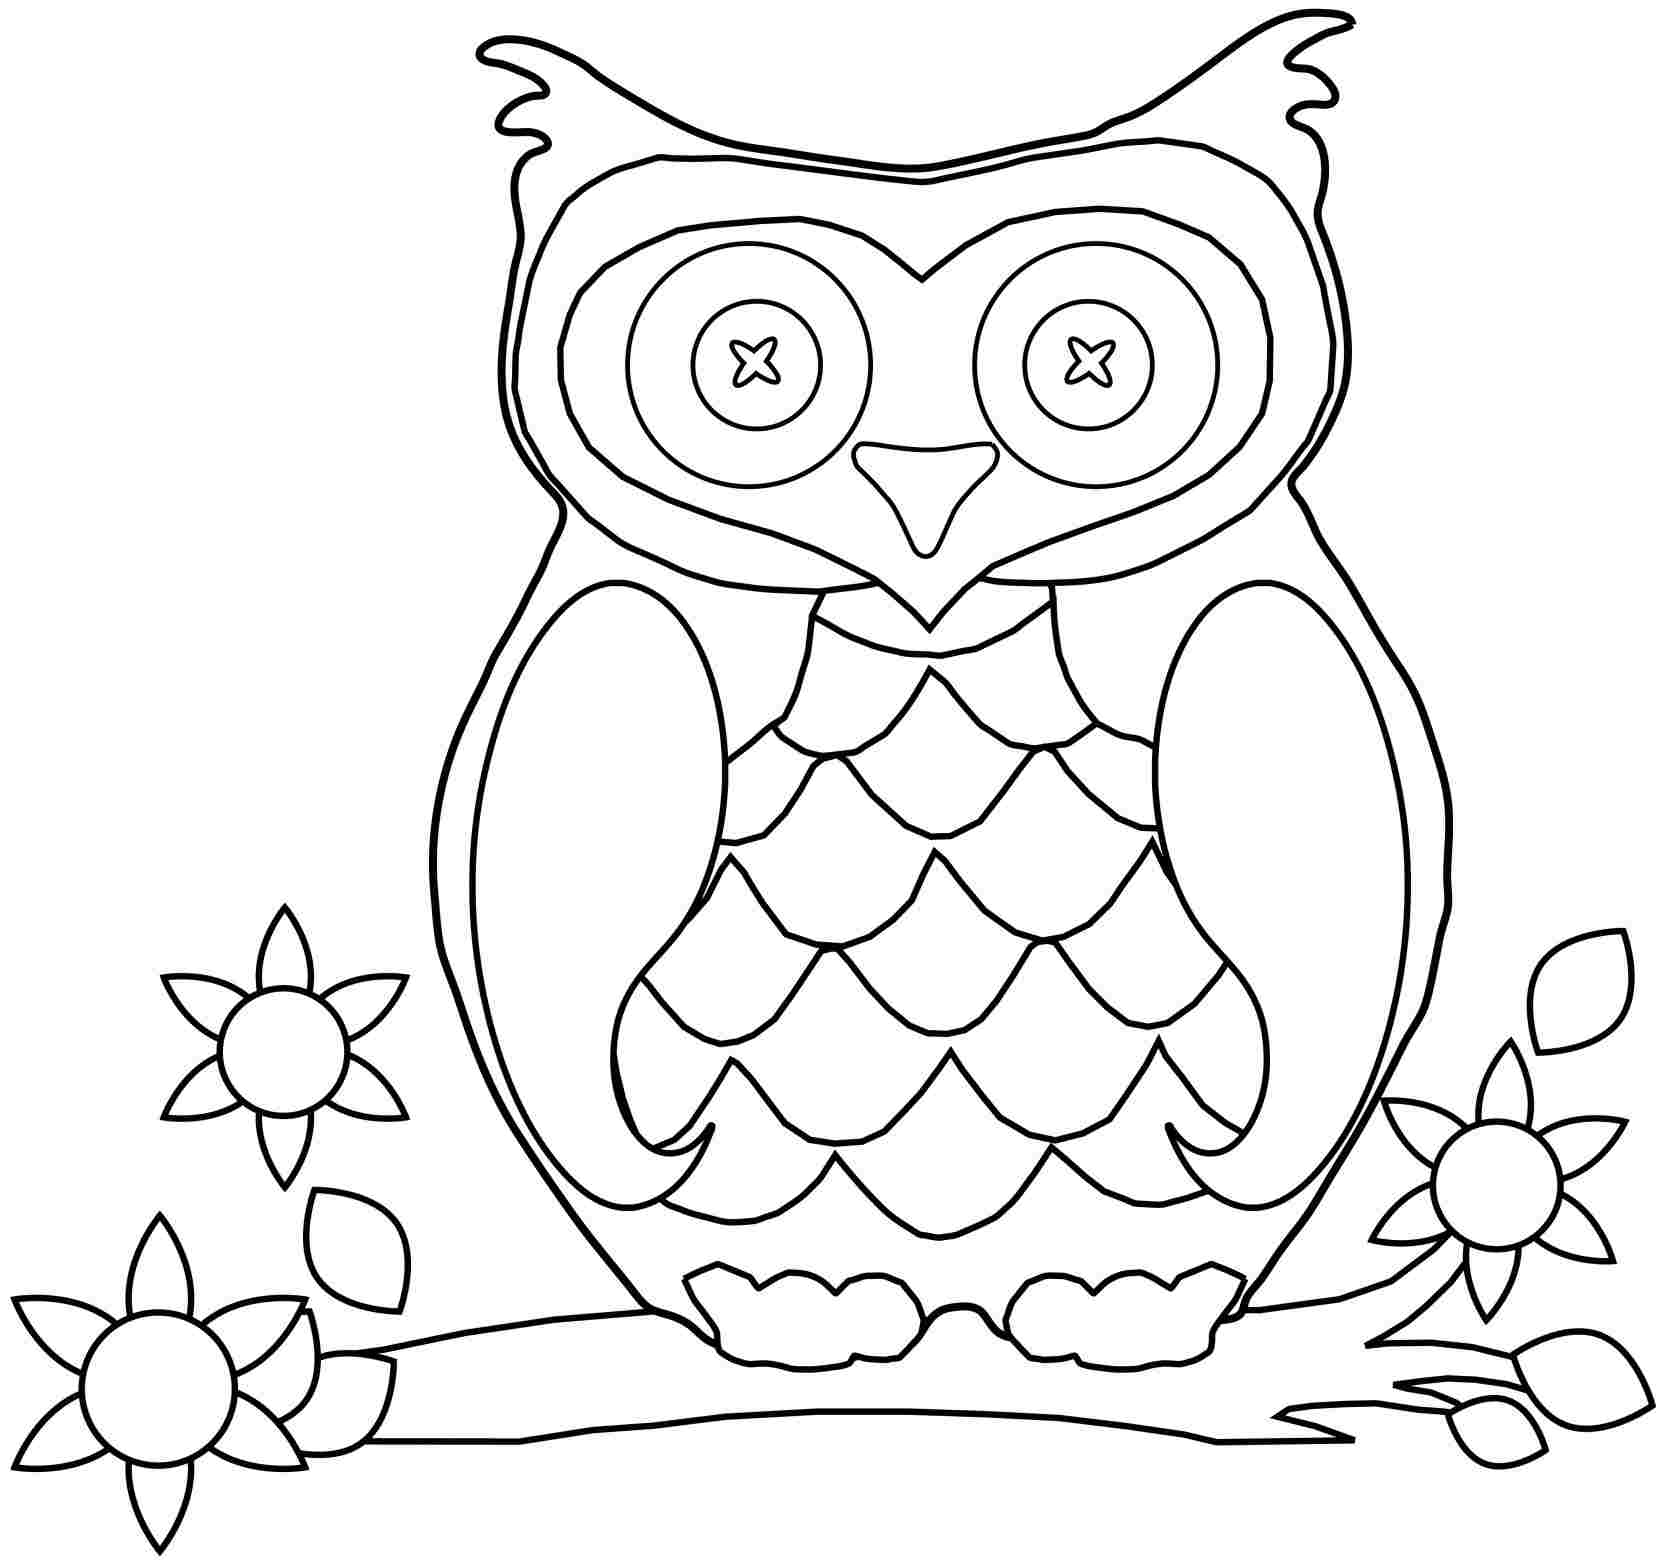 printable pictures of owls free printable owl coloring pages for kids of pictures printable owls